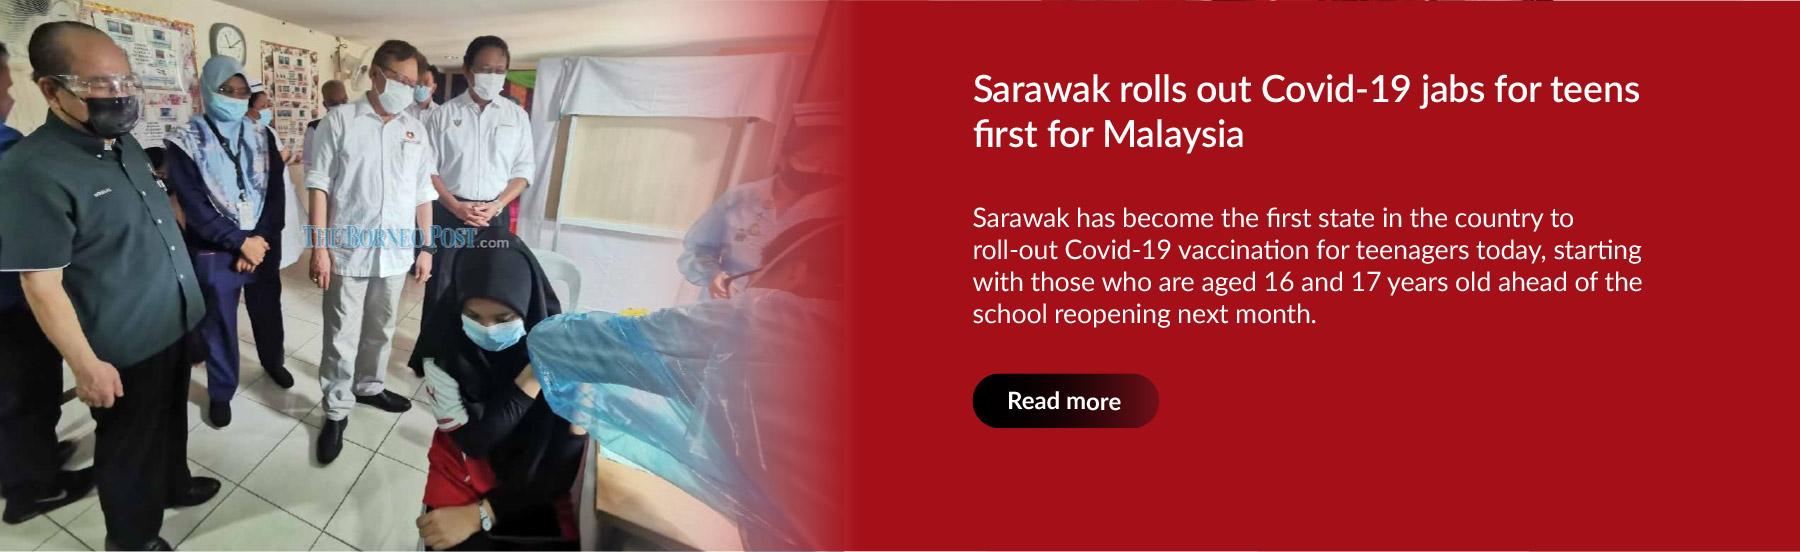 Sarawak rolls out Covid-19 jabs for teens first for Malaysia